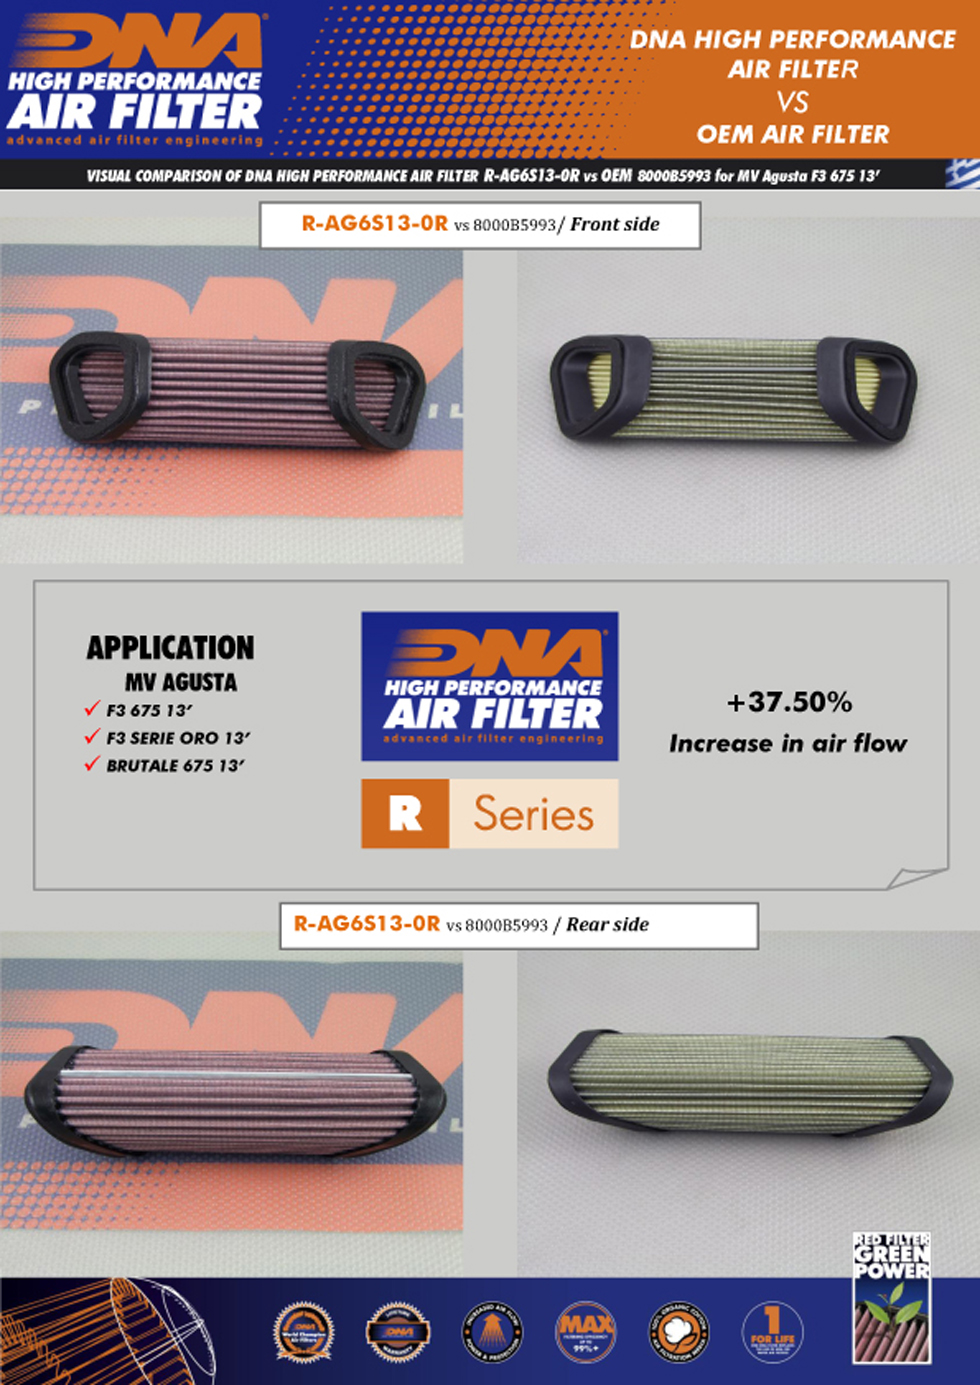 DNA air filters are supeior to stock oem MV Agusta air filters